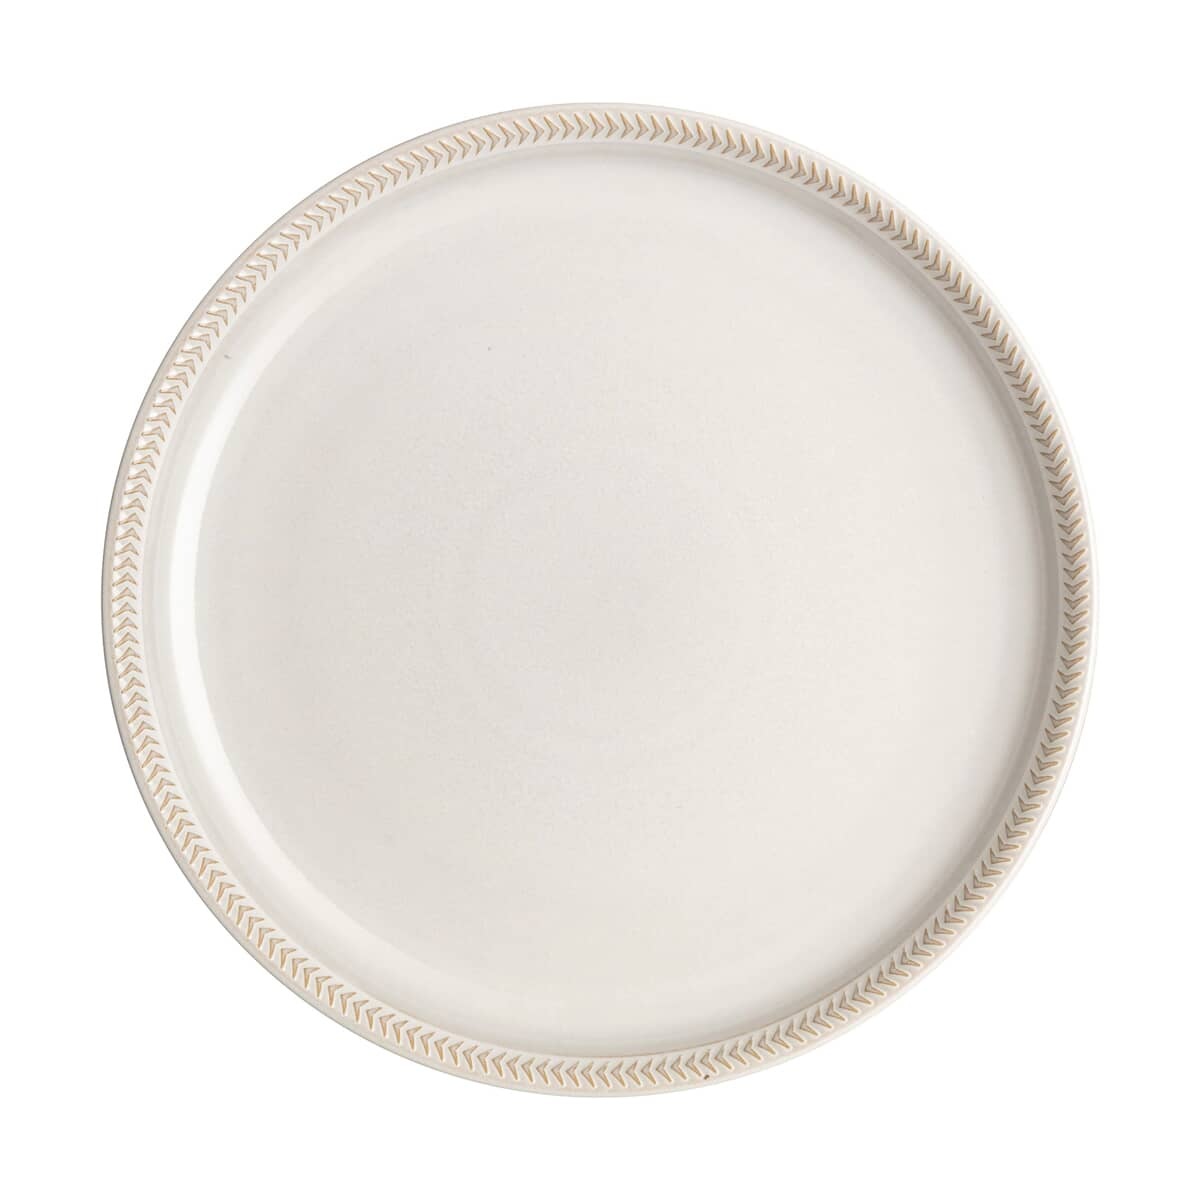 Denby Natural Canvas Textured Dessert/Salad Coupe Plate